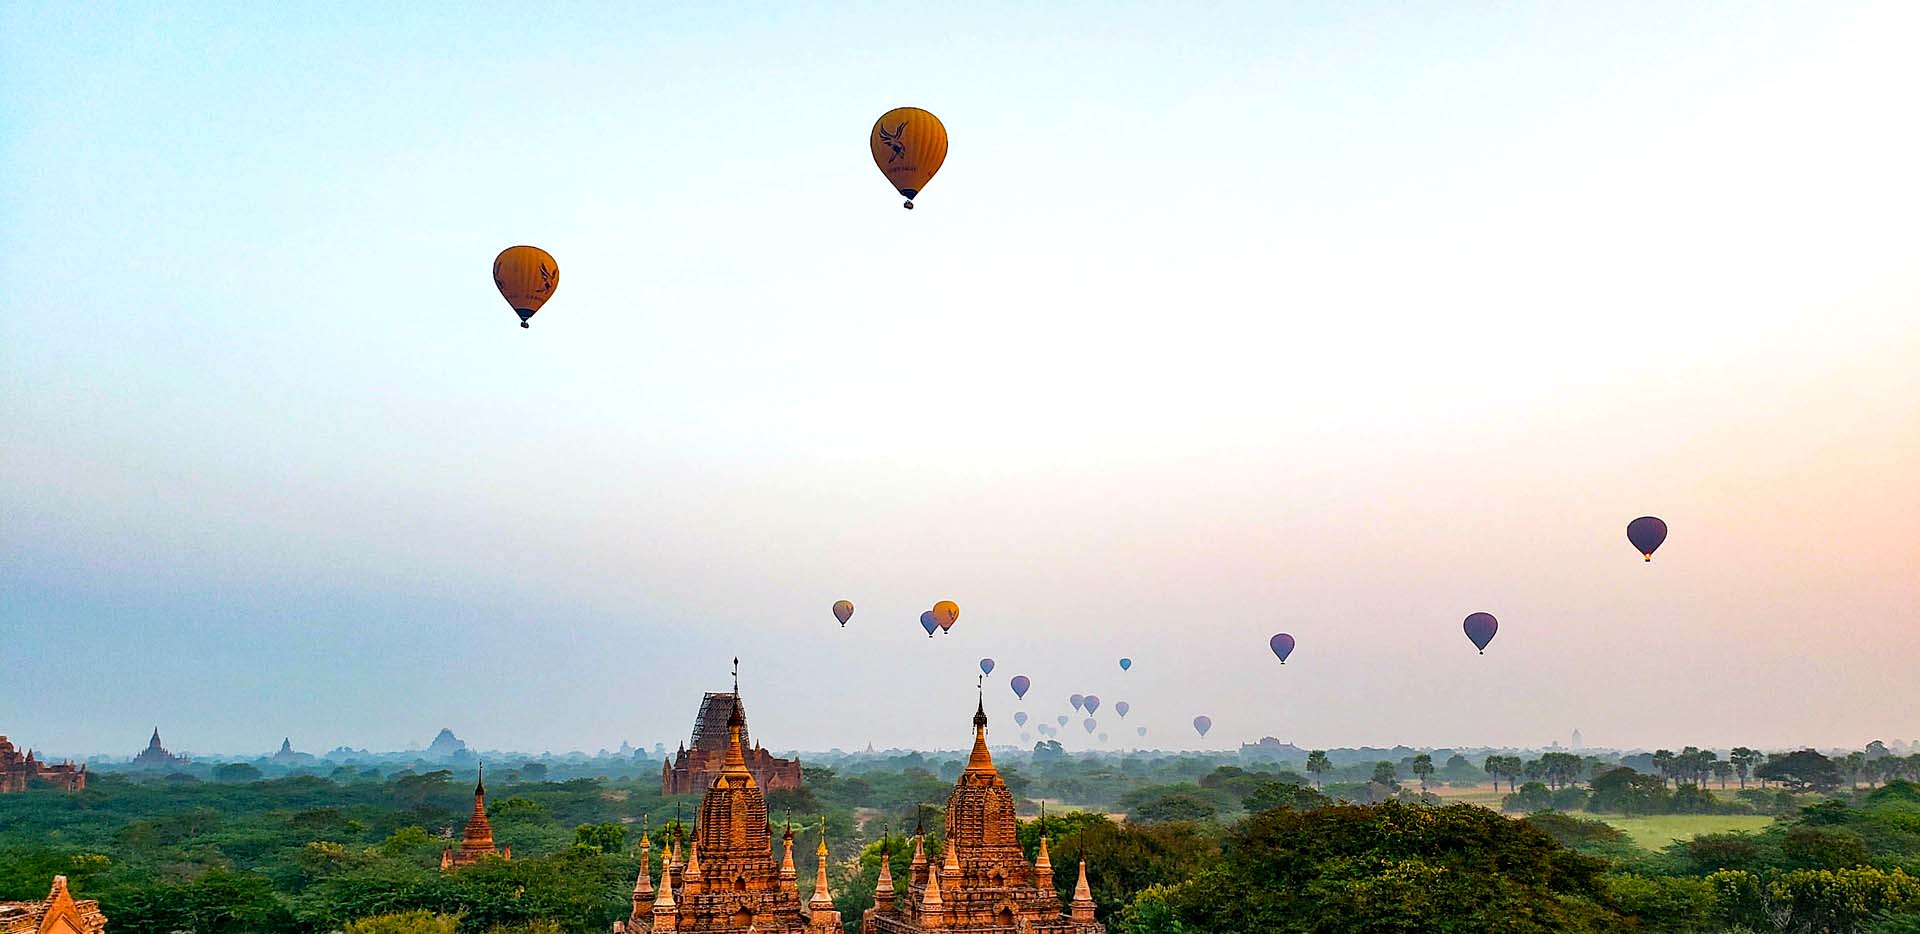 Balloons at Sunrise over the Pagodas